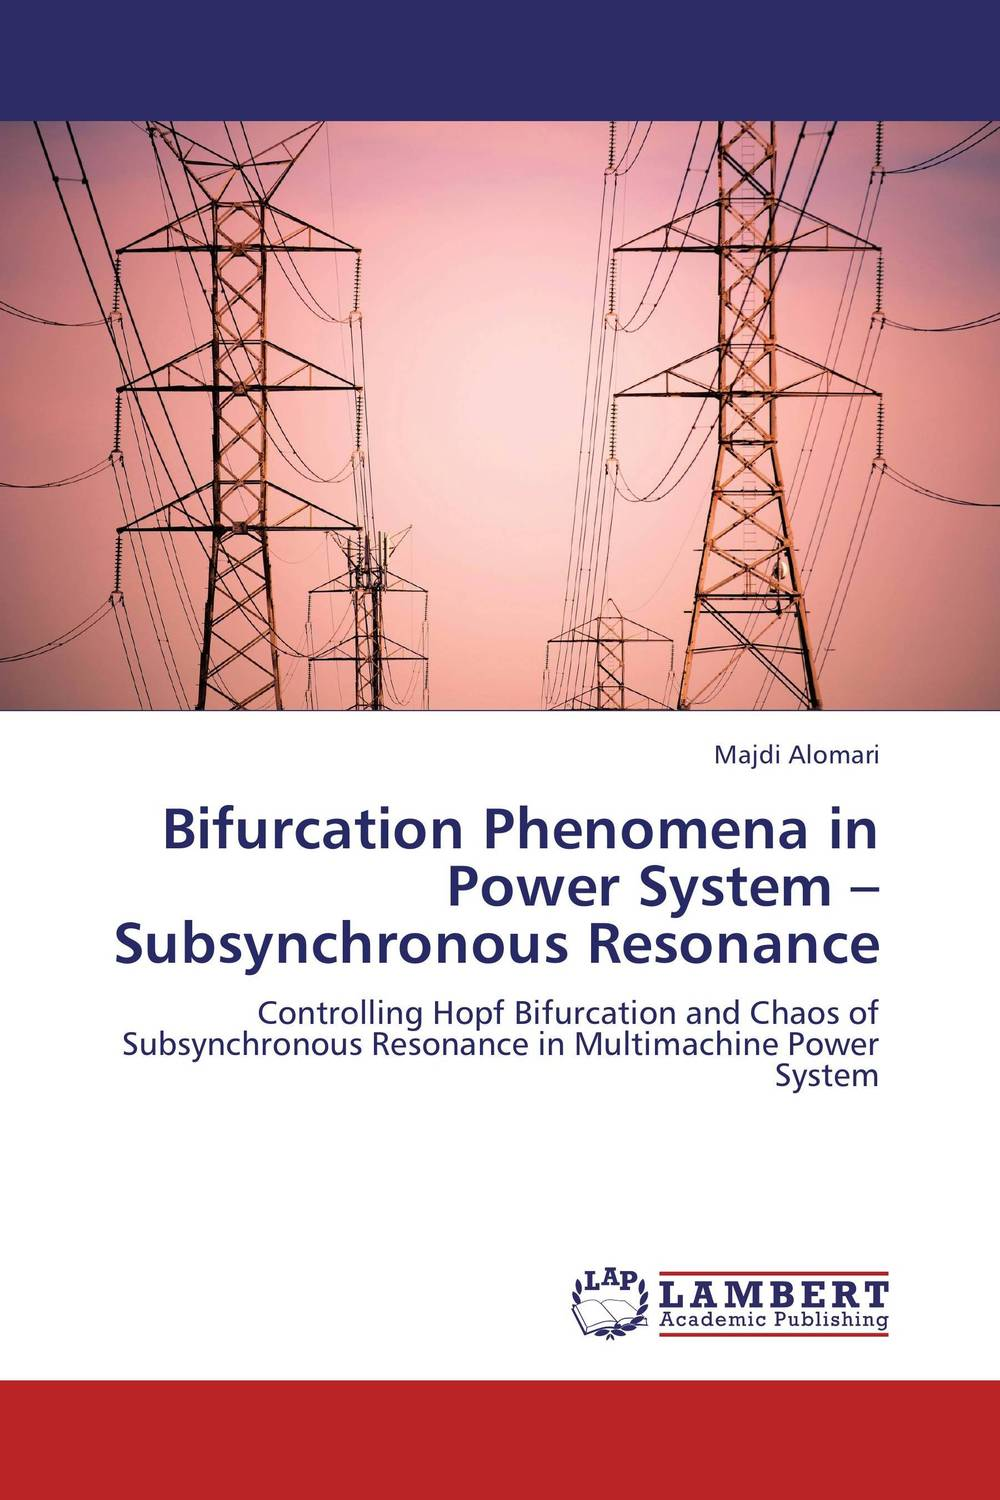 Bifurcation Phenomena in Power System – Subsynchronous Resonance